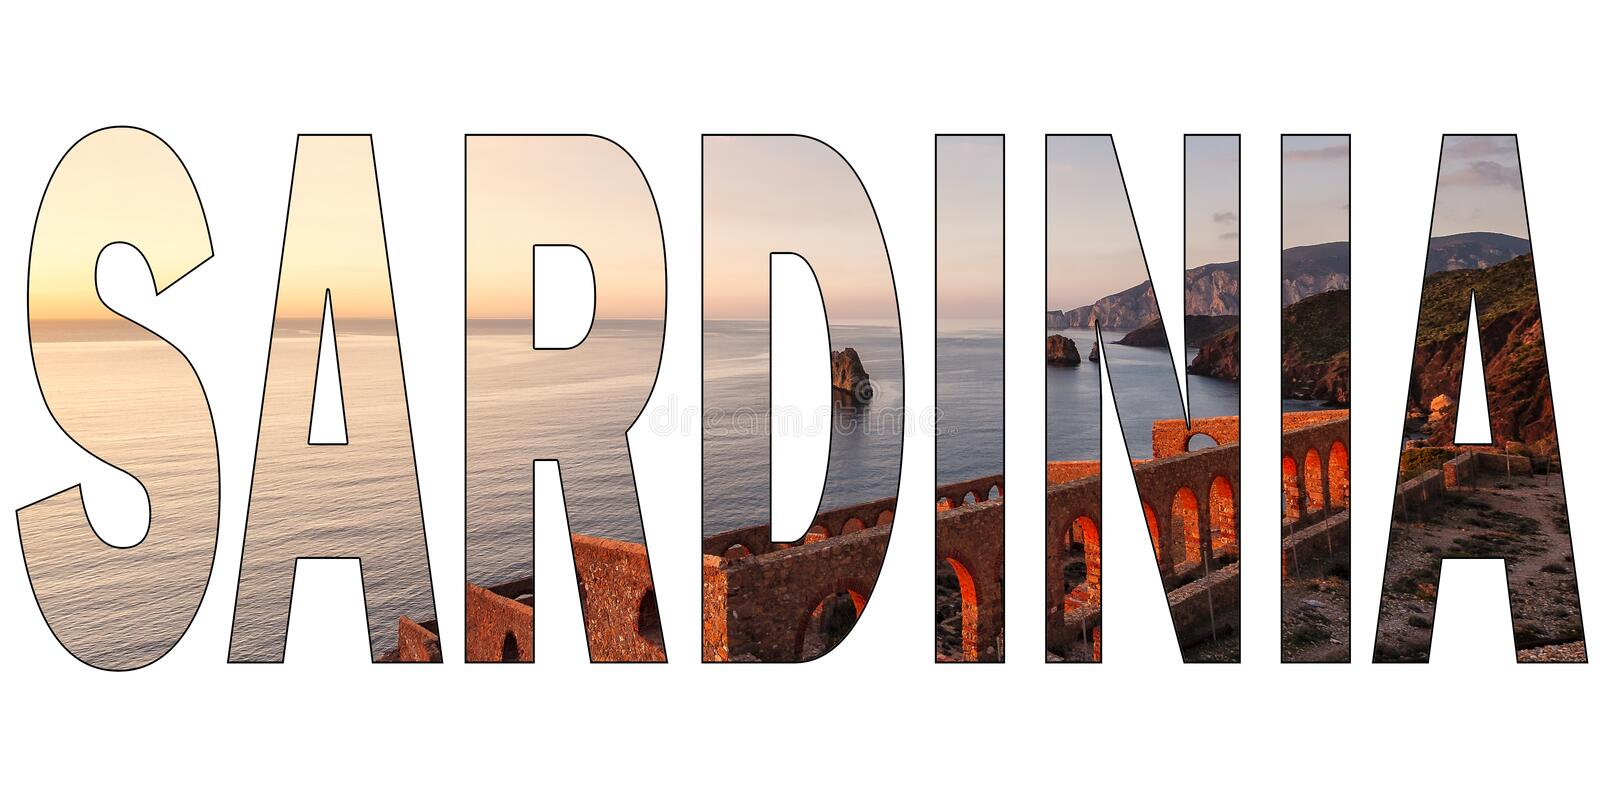 Written SARDINIA with an old mining construction background royalty free stock images